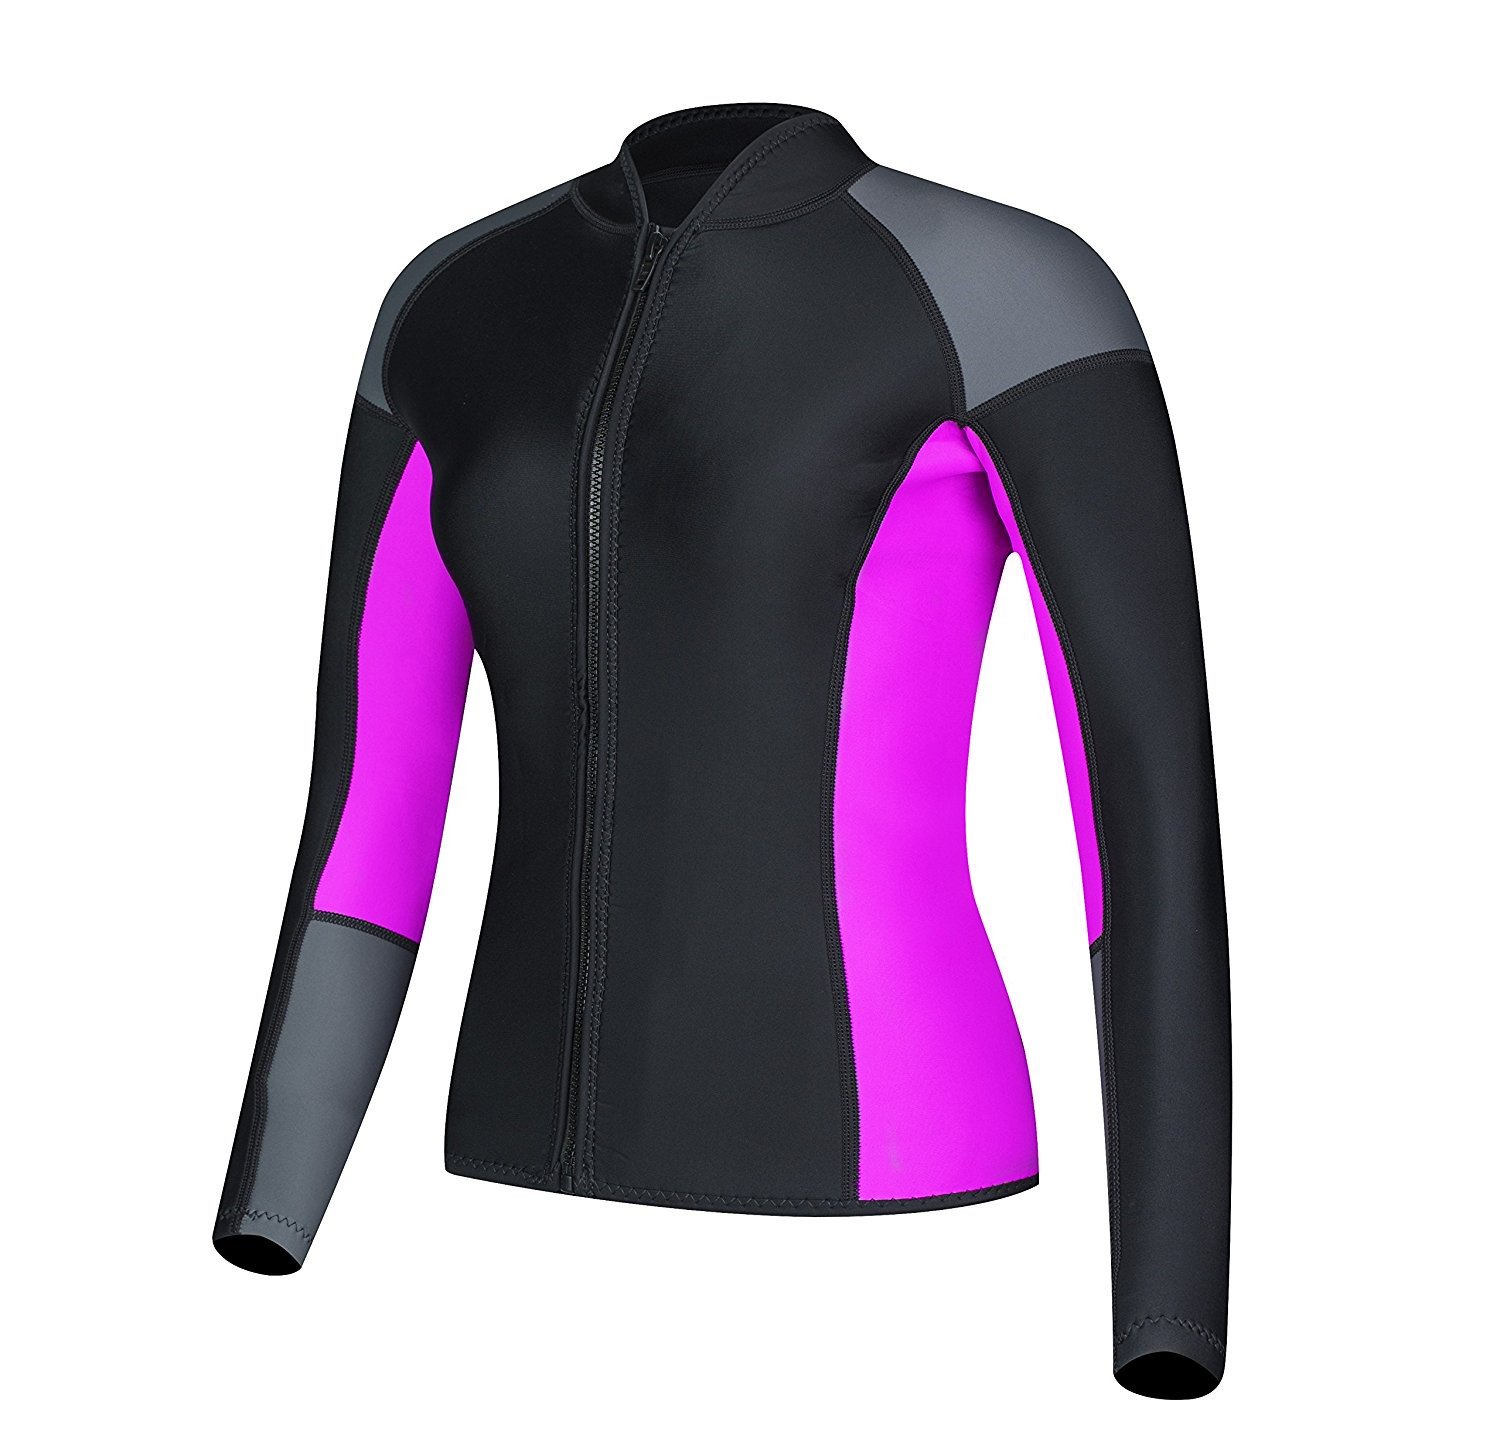 82d289155f Dive   SAIL Women s 3 2 mm Wetsuits Jacket Long Sleeve Neoprene Wetsuit Top  (